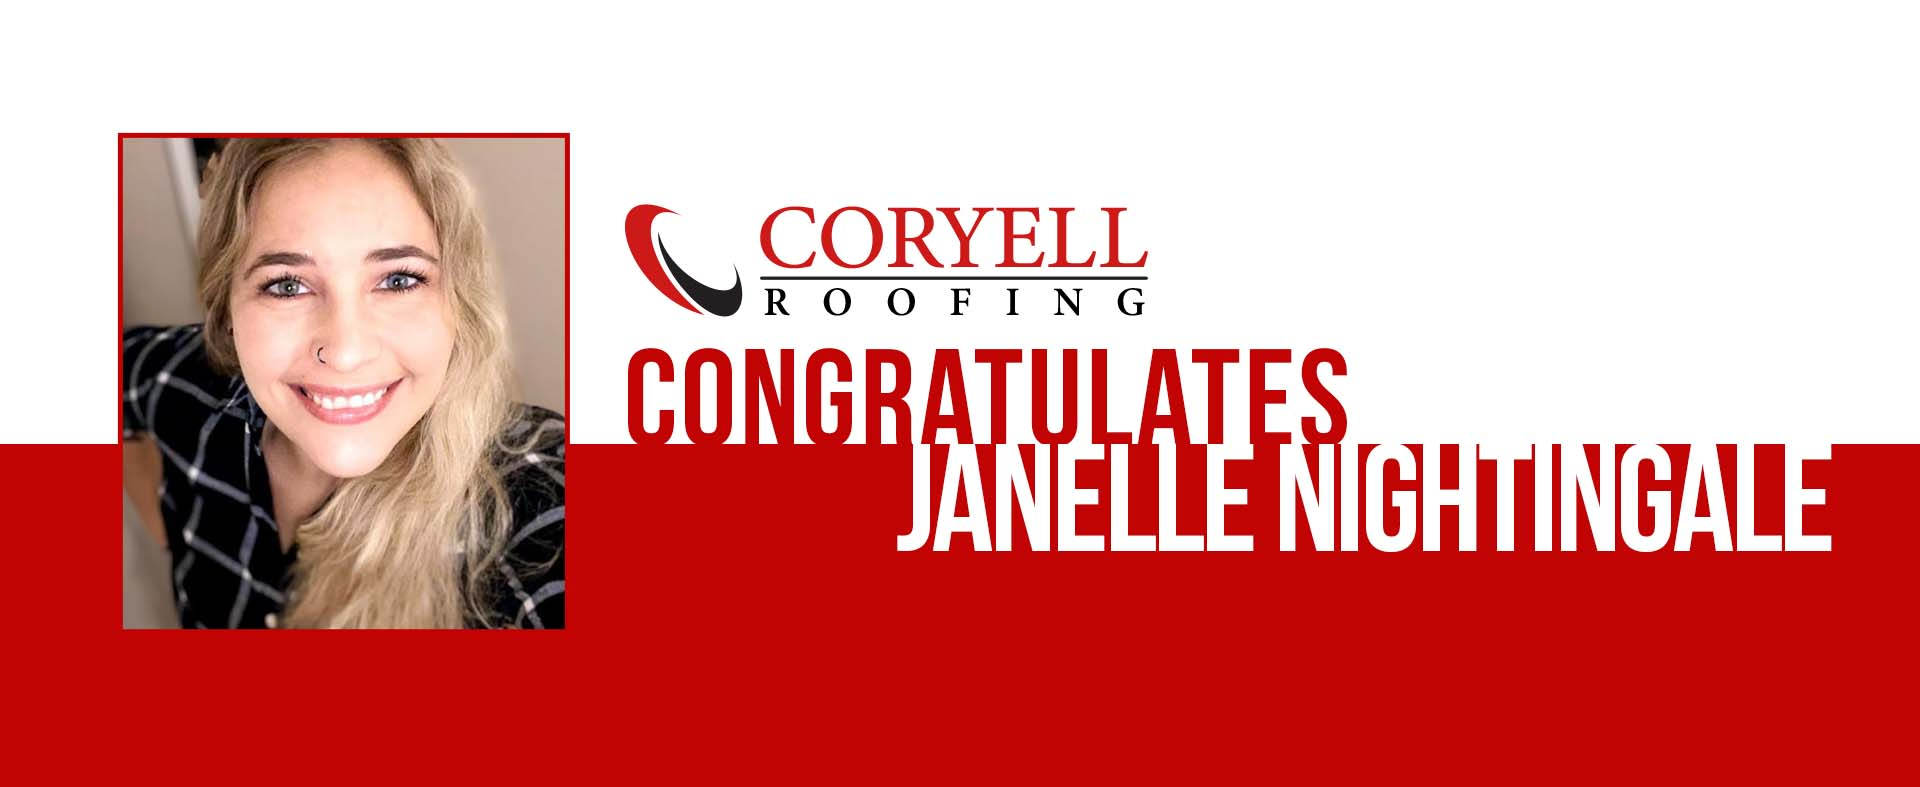 Congratulations Janelle Nightingale